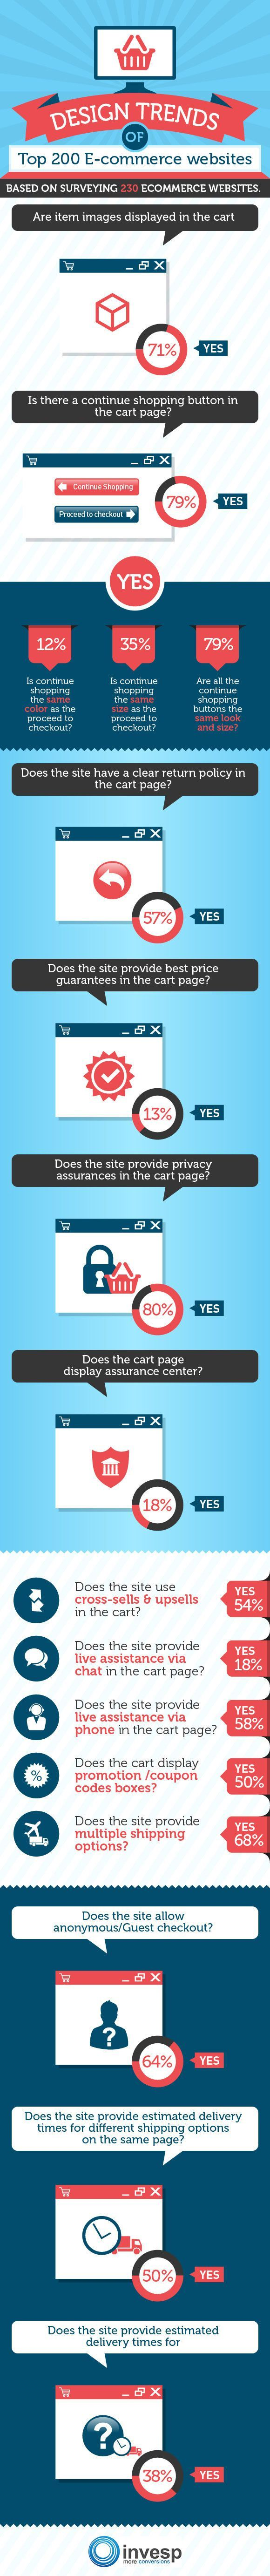 ecommerce design trends what to include on your online shop infographic